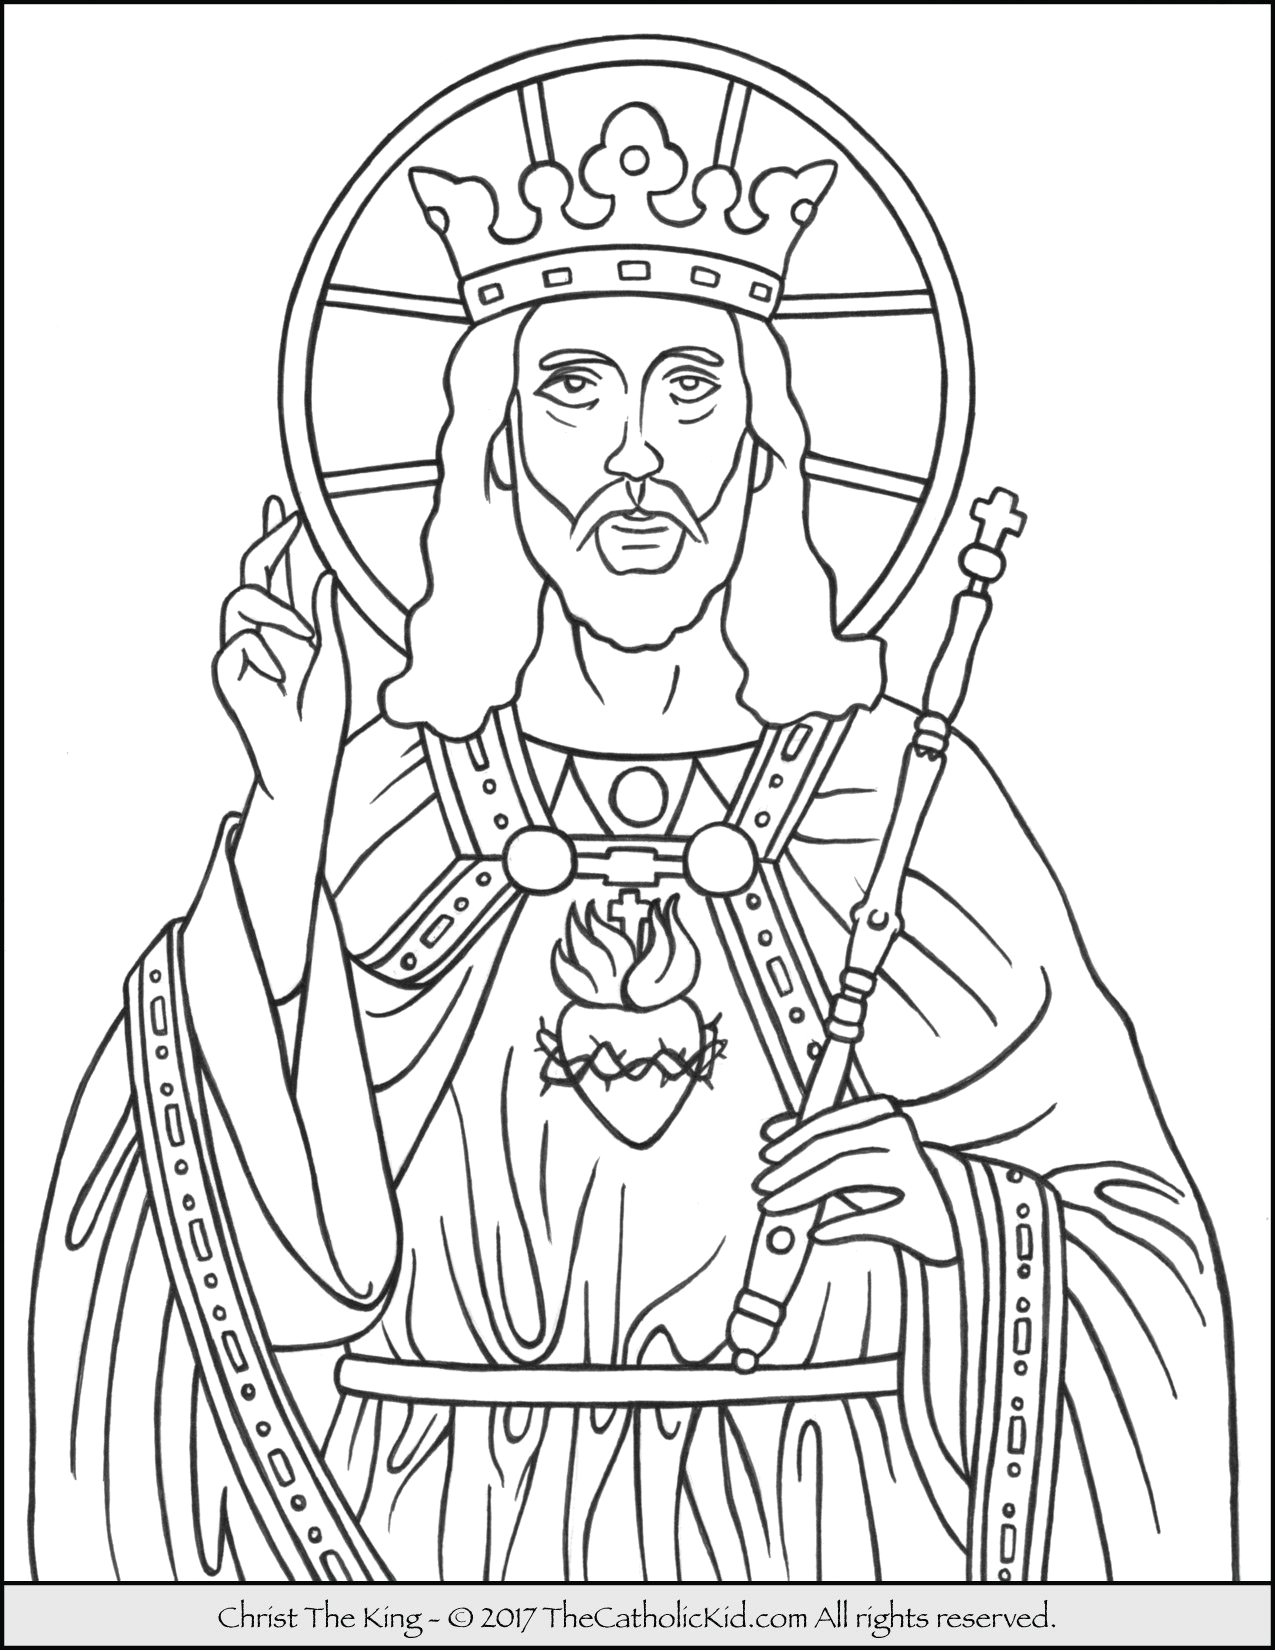 Coloring Pages for Christ the King Sunday Christ the King Coloring Page thecatholickid